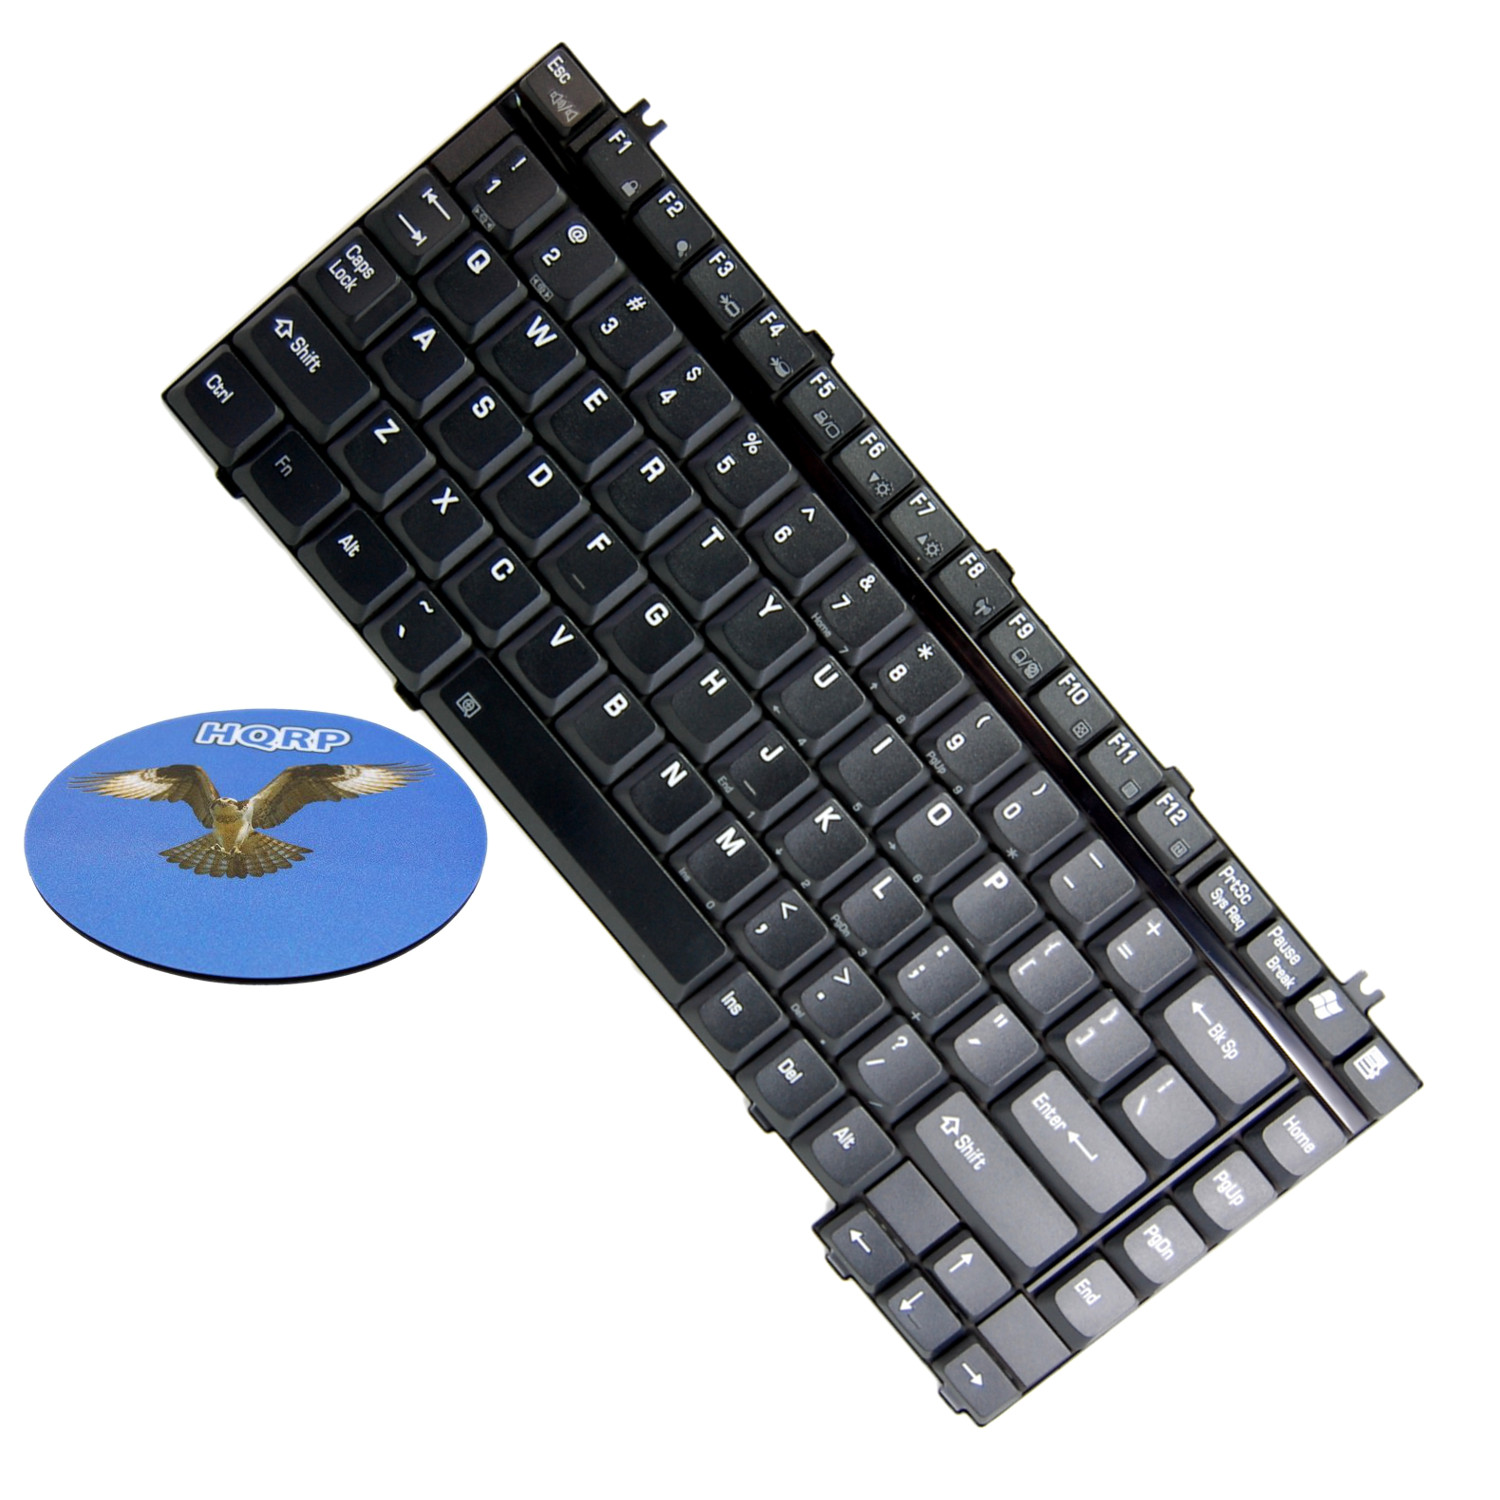 HQRP Laptop Keyboard for Toshiba Satellite M45-S265 / M45-S2651 / M45-S2652 / M45-S2653 Notebook Replacement plus HQRP Coaster